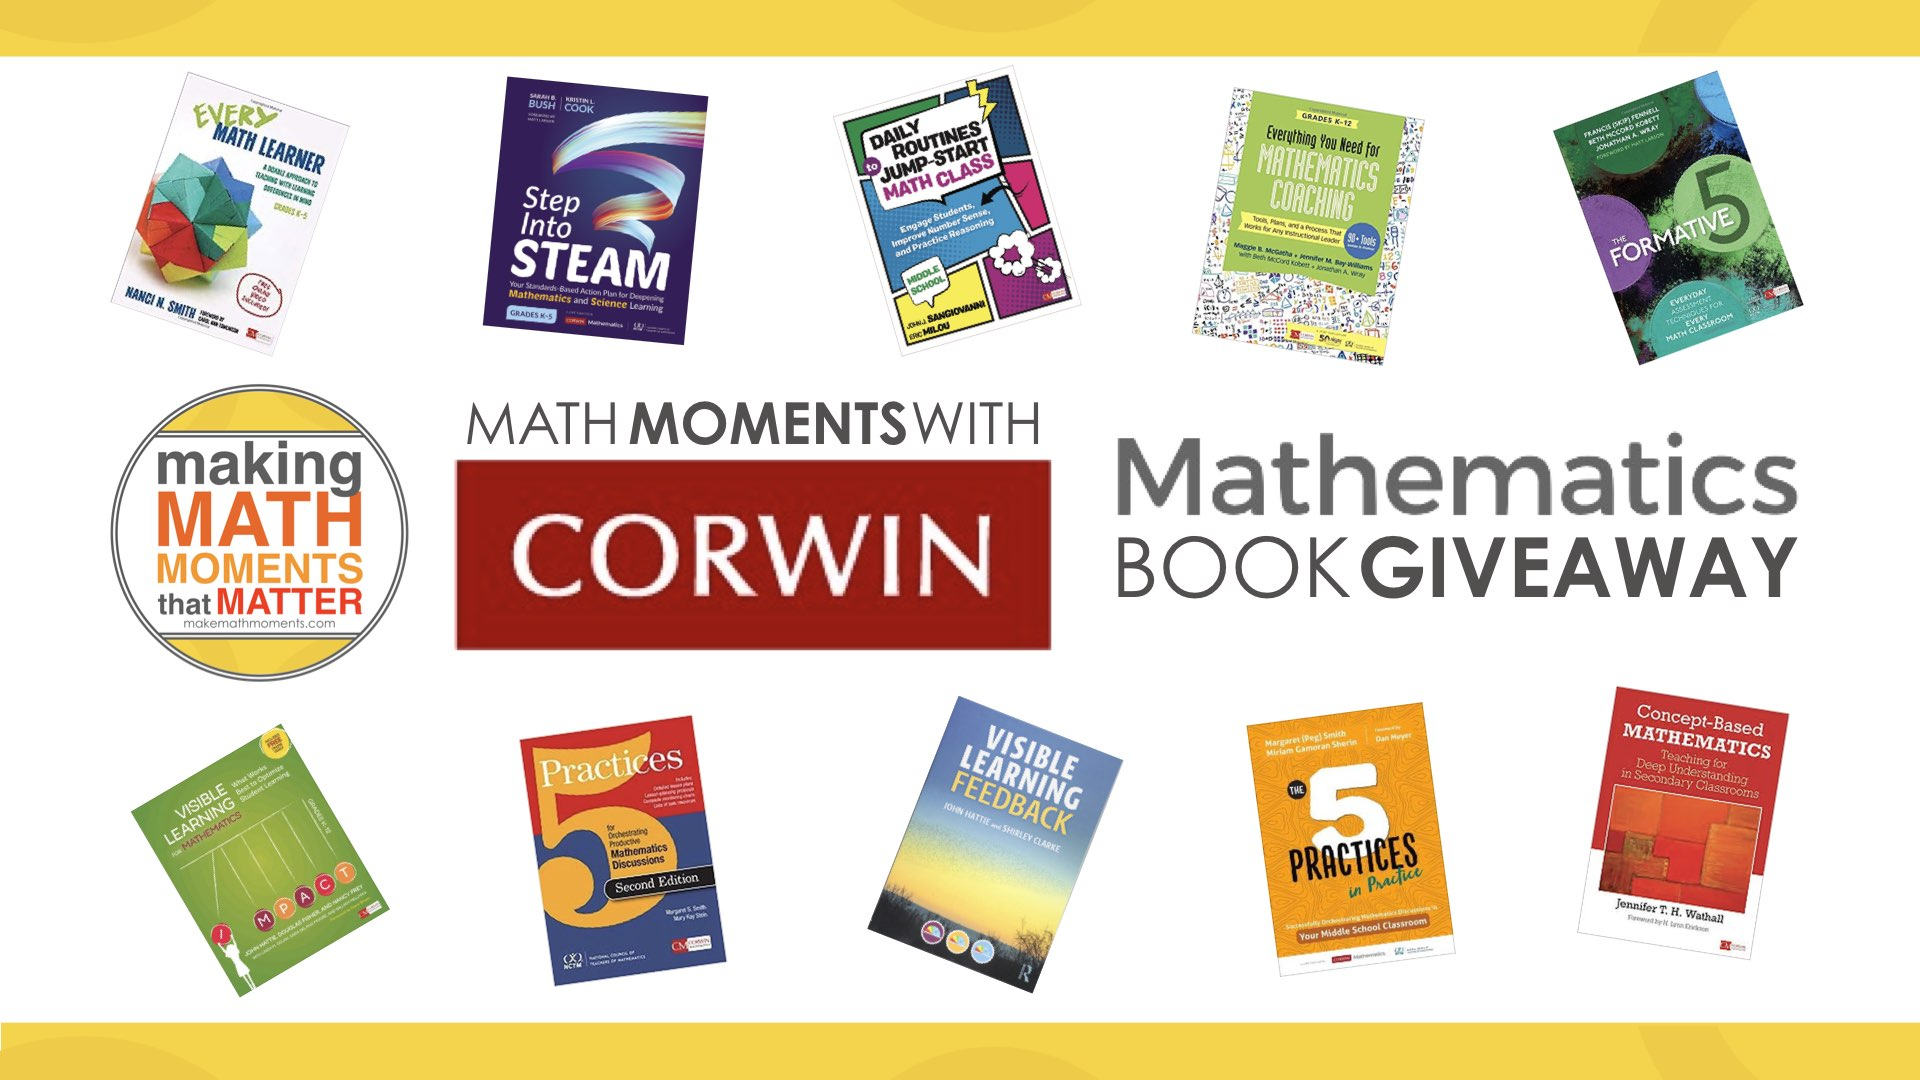 Math Moments With Corwin Mathematics Book Giveaway